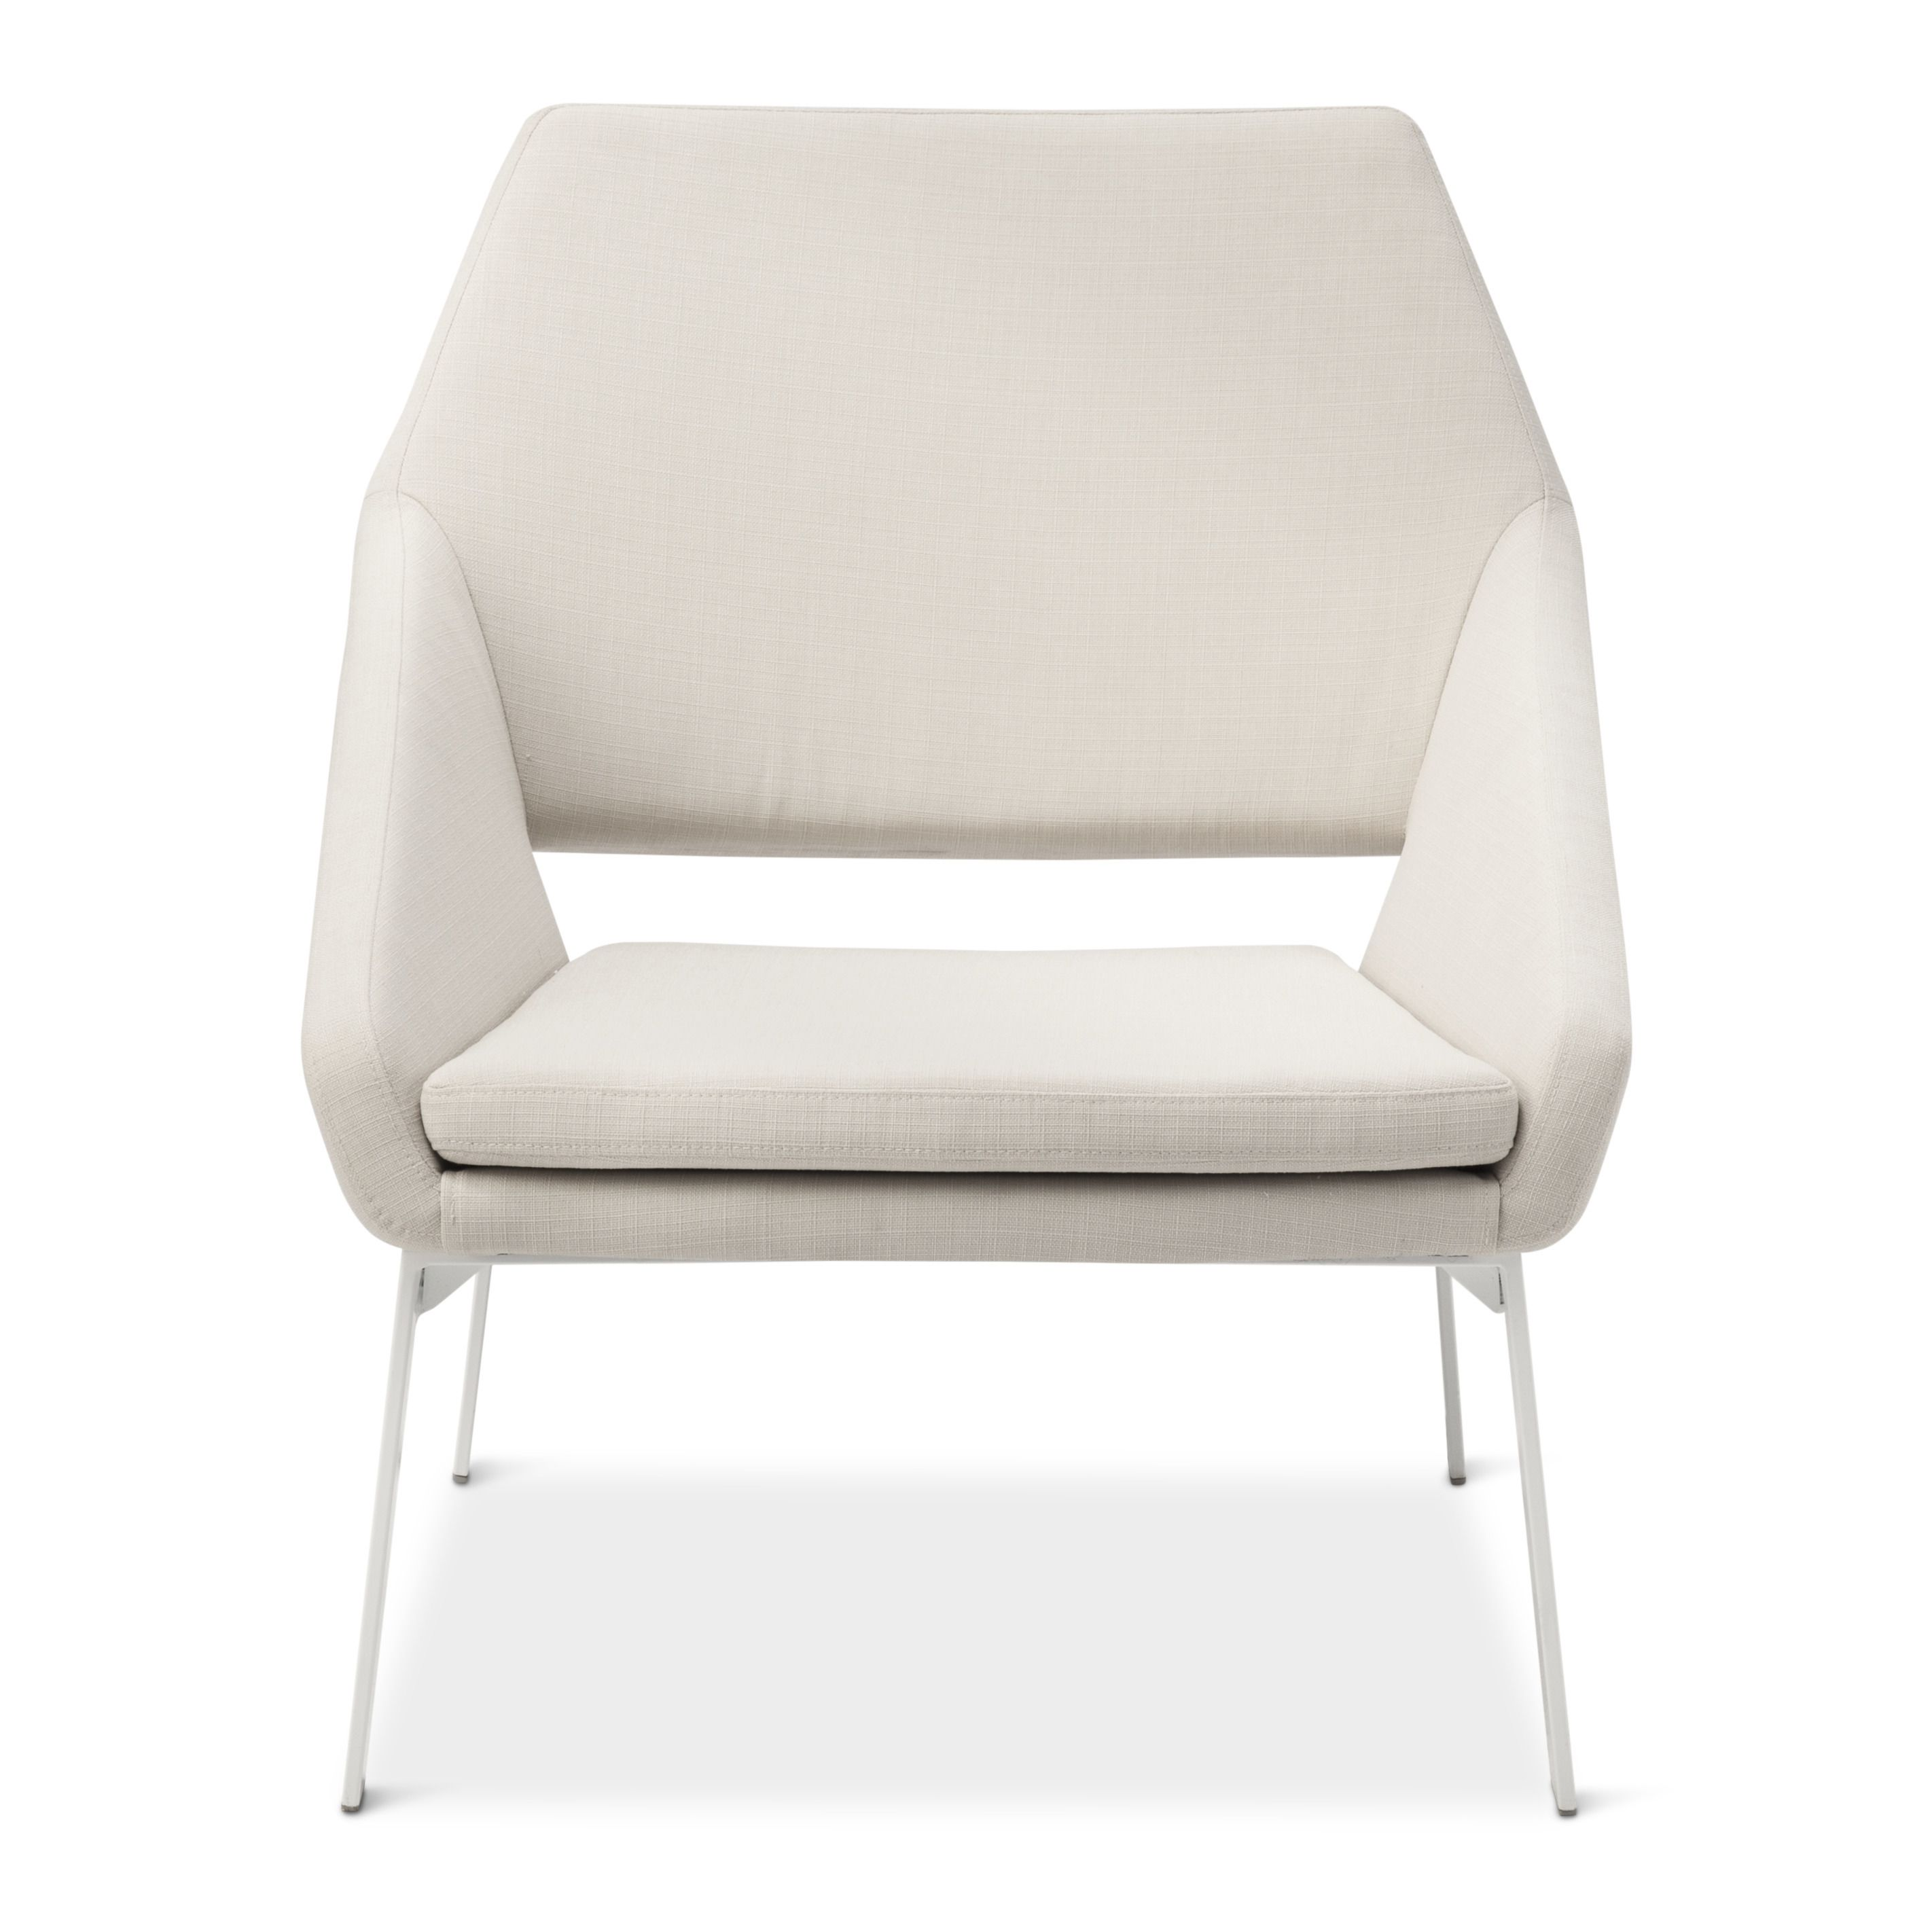 dwell modern lounge furniture. Modern By Dwell Magazine: Indoor Collection Target. Lounge ChairsLoungesChris Furniture V